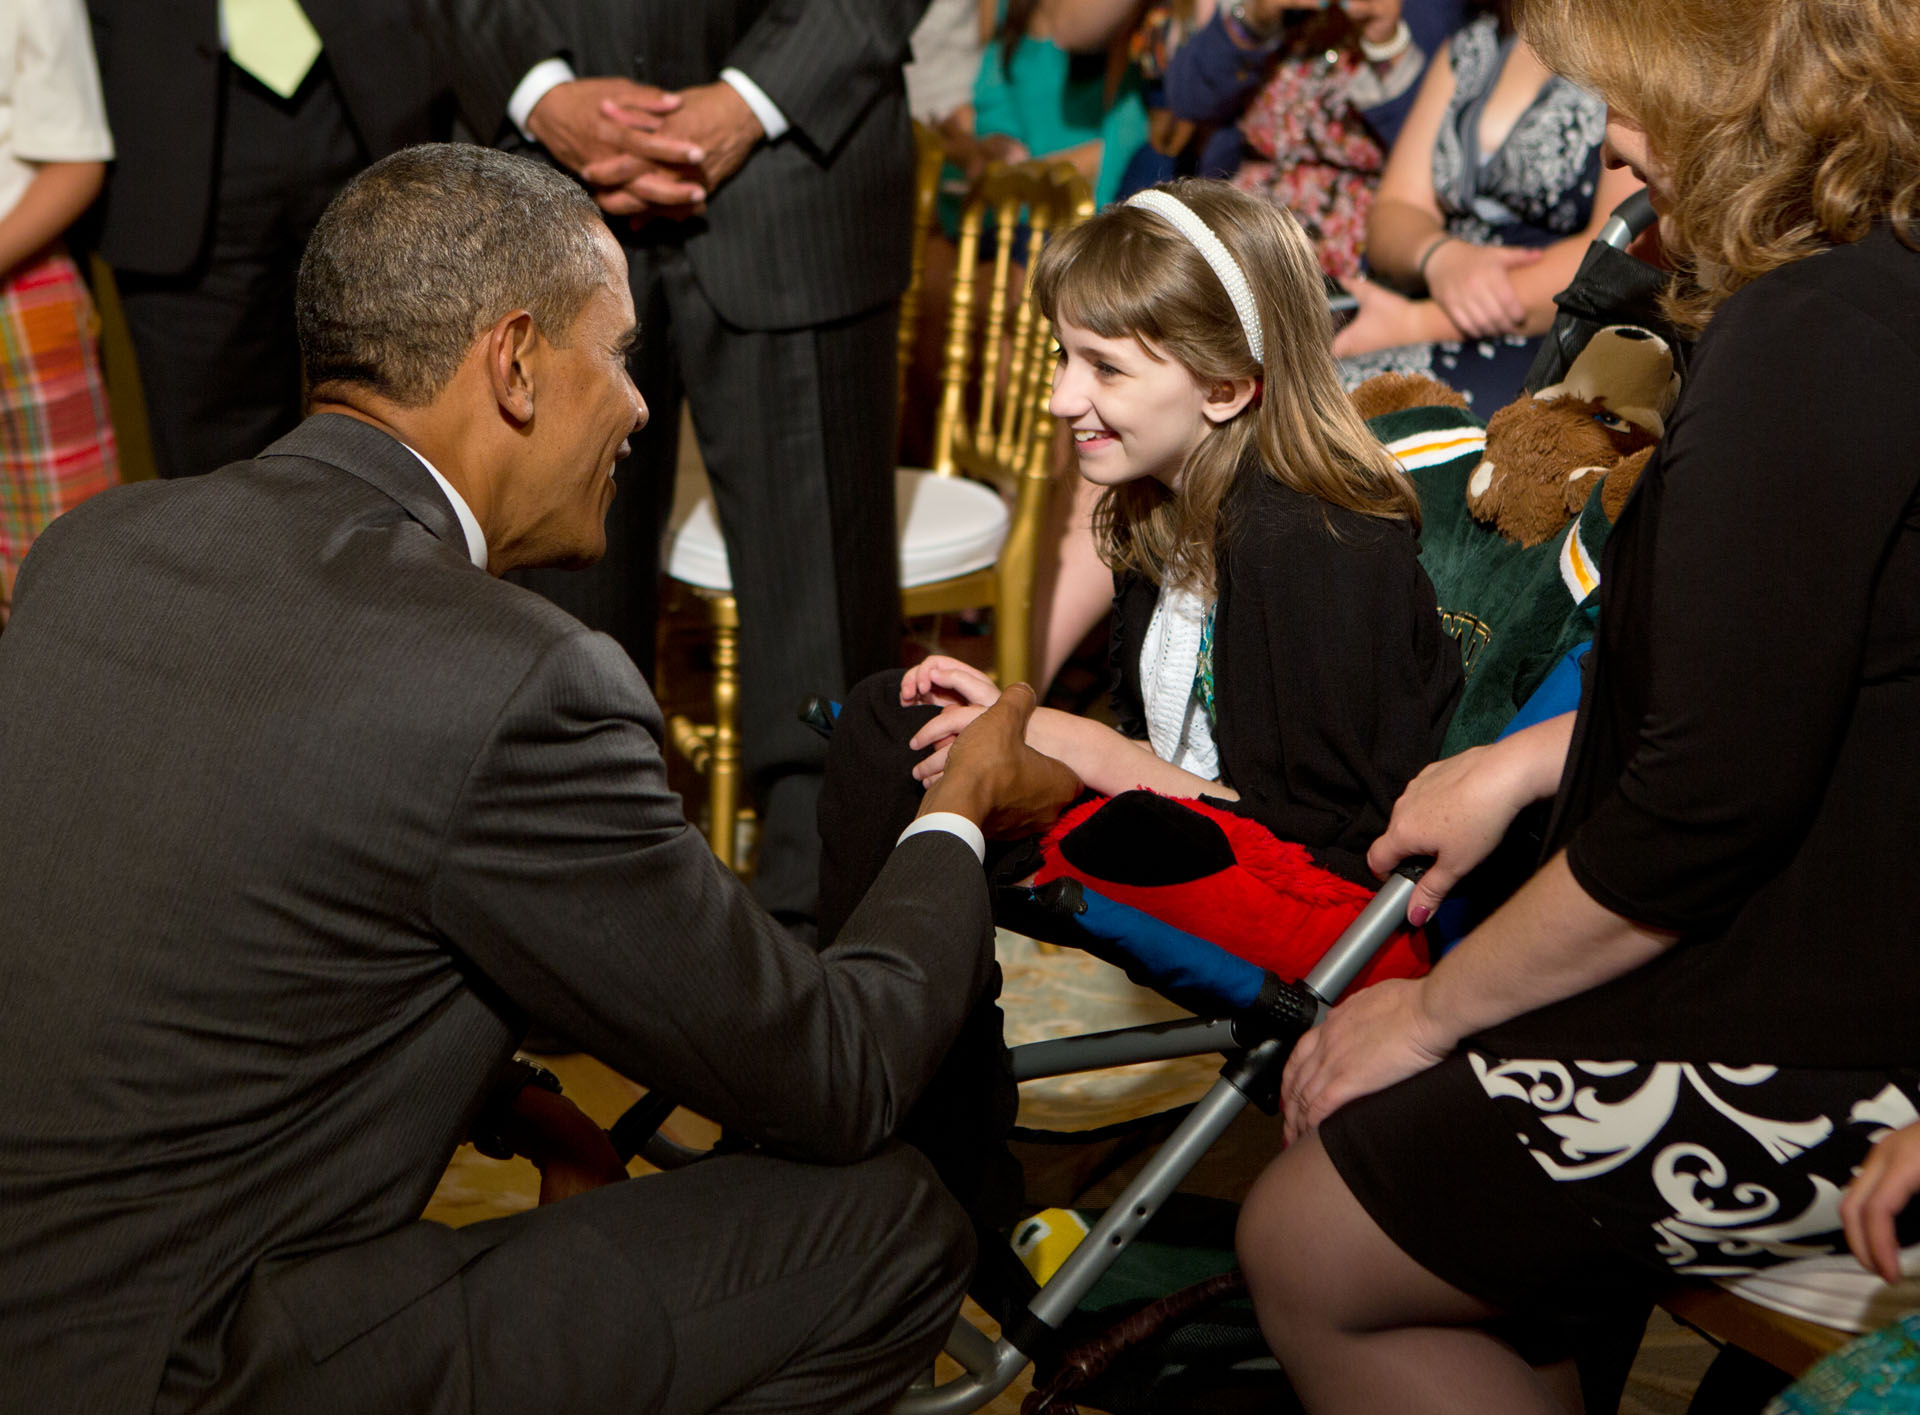 President Barack Obama greets Haley Klepper (July 18, 2012)